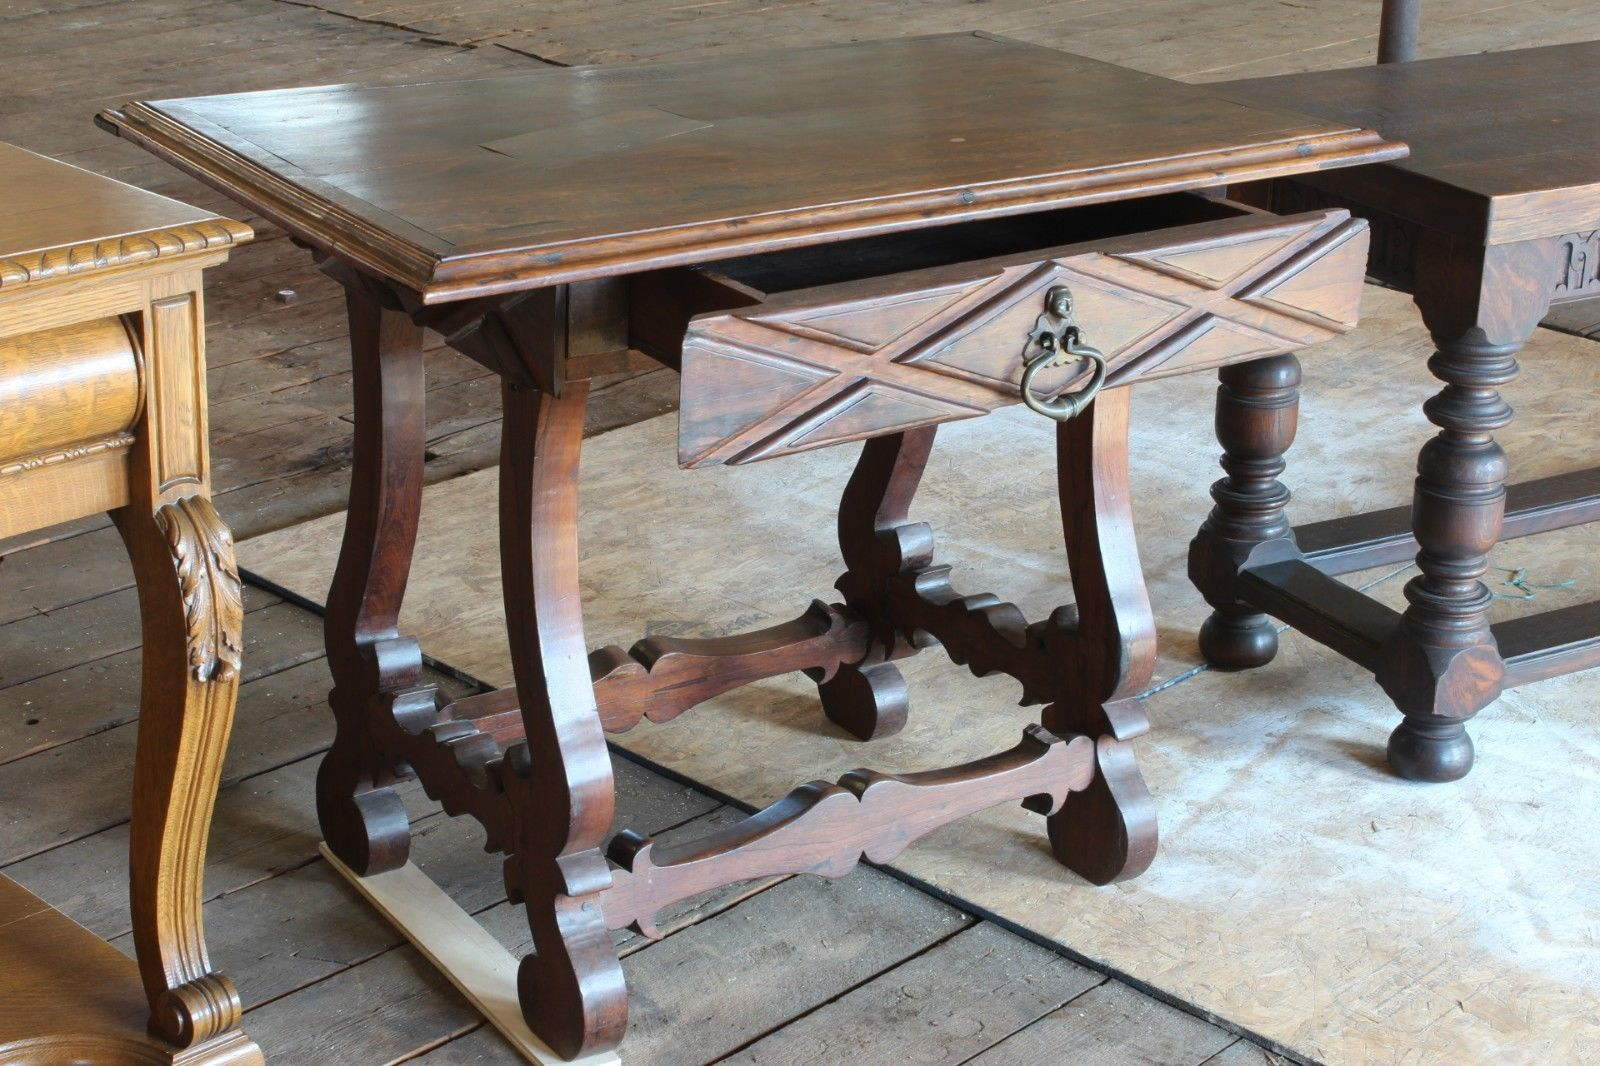 Rhodesian teak console table carved riam rhodesian teak console table carved geotapseo Image collections